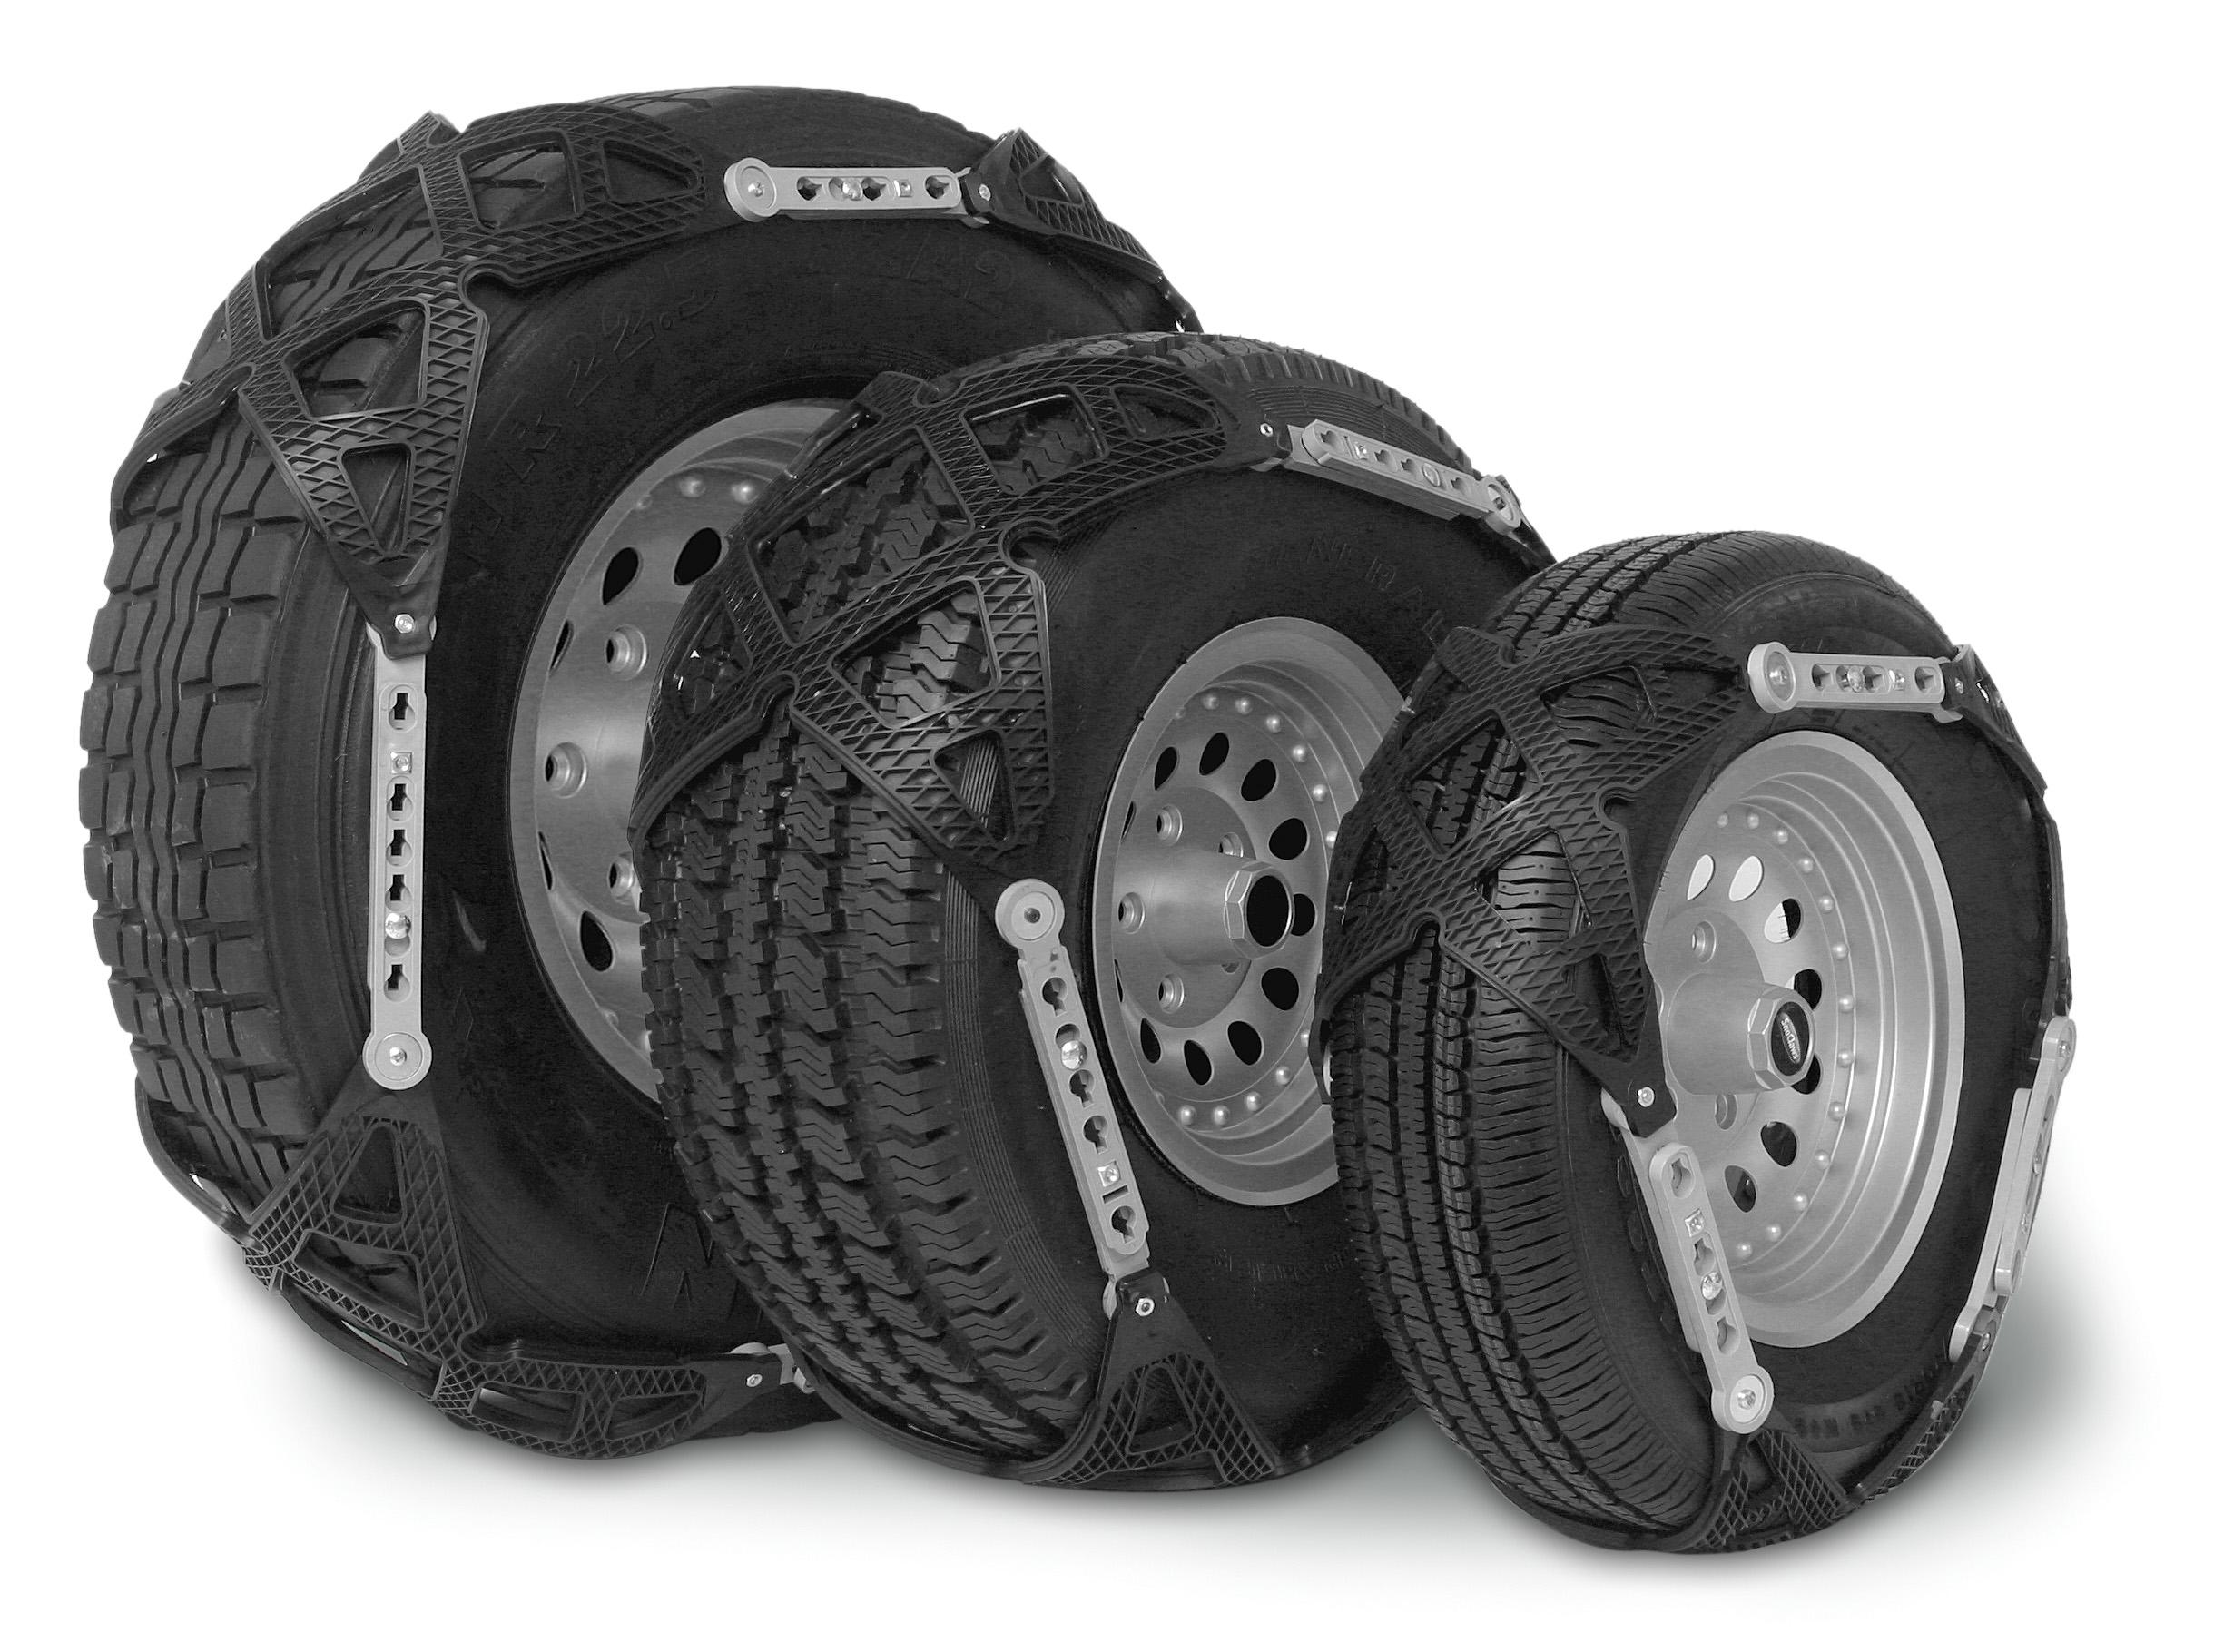 weatherclaws 2640 rubber tire chain legal alternative to auto tire chains roughly. Black Bedroom Furniture Sets. Home Design Ideas